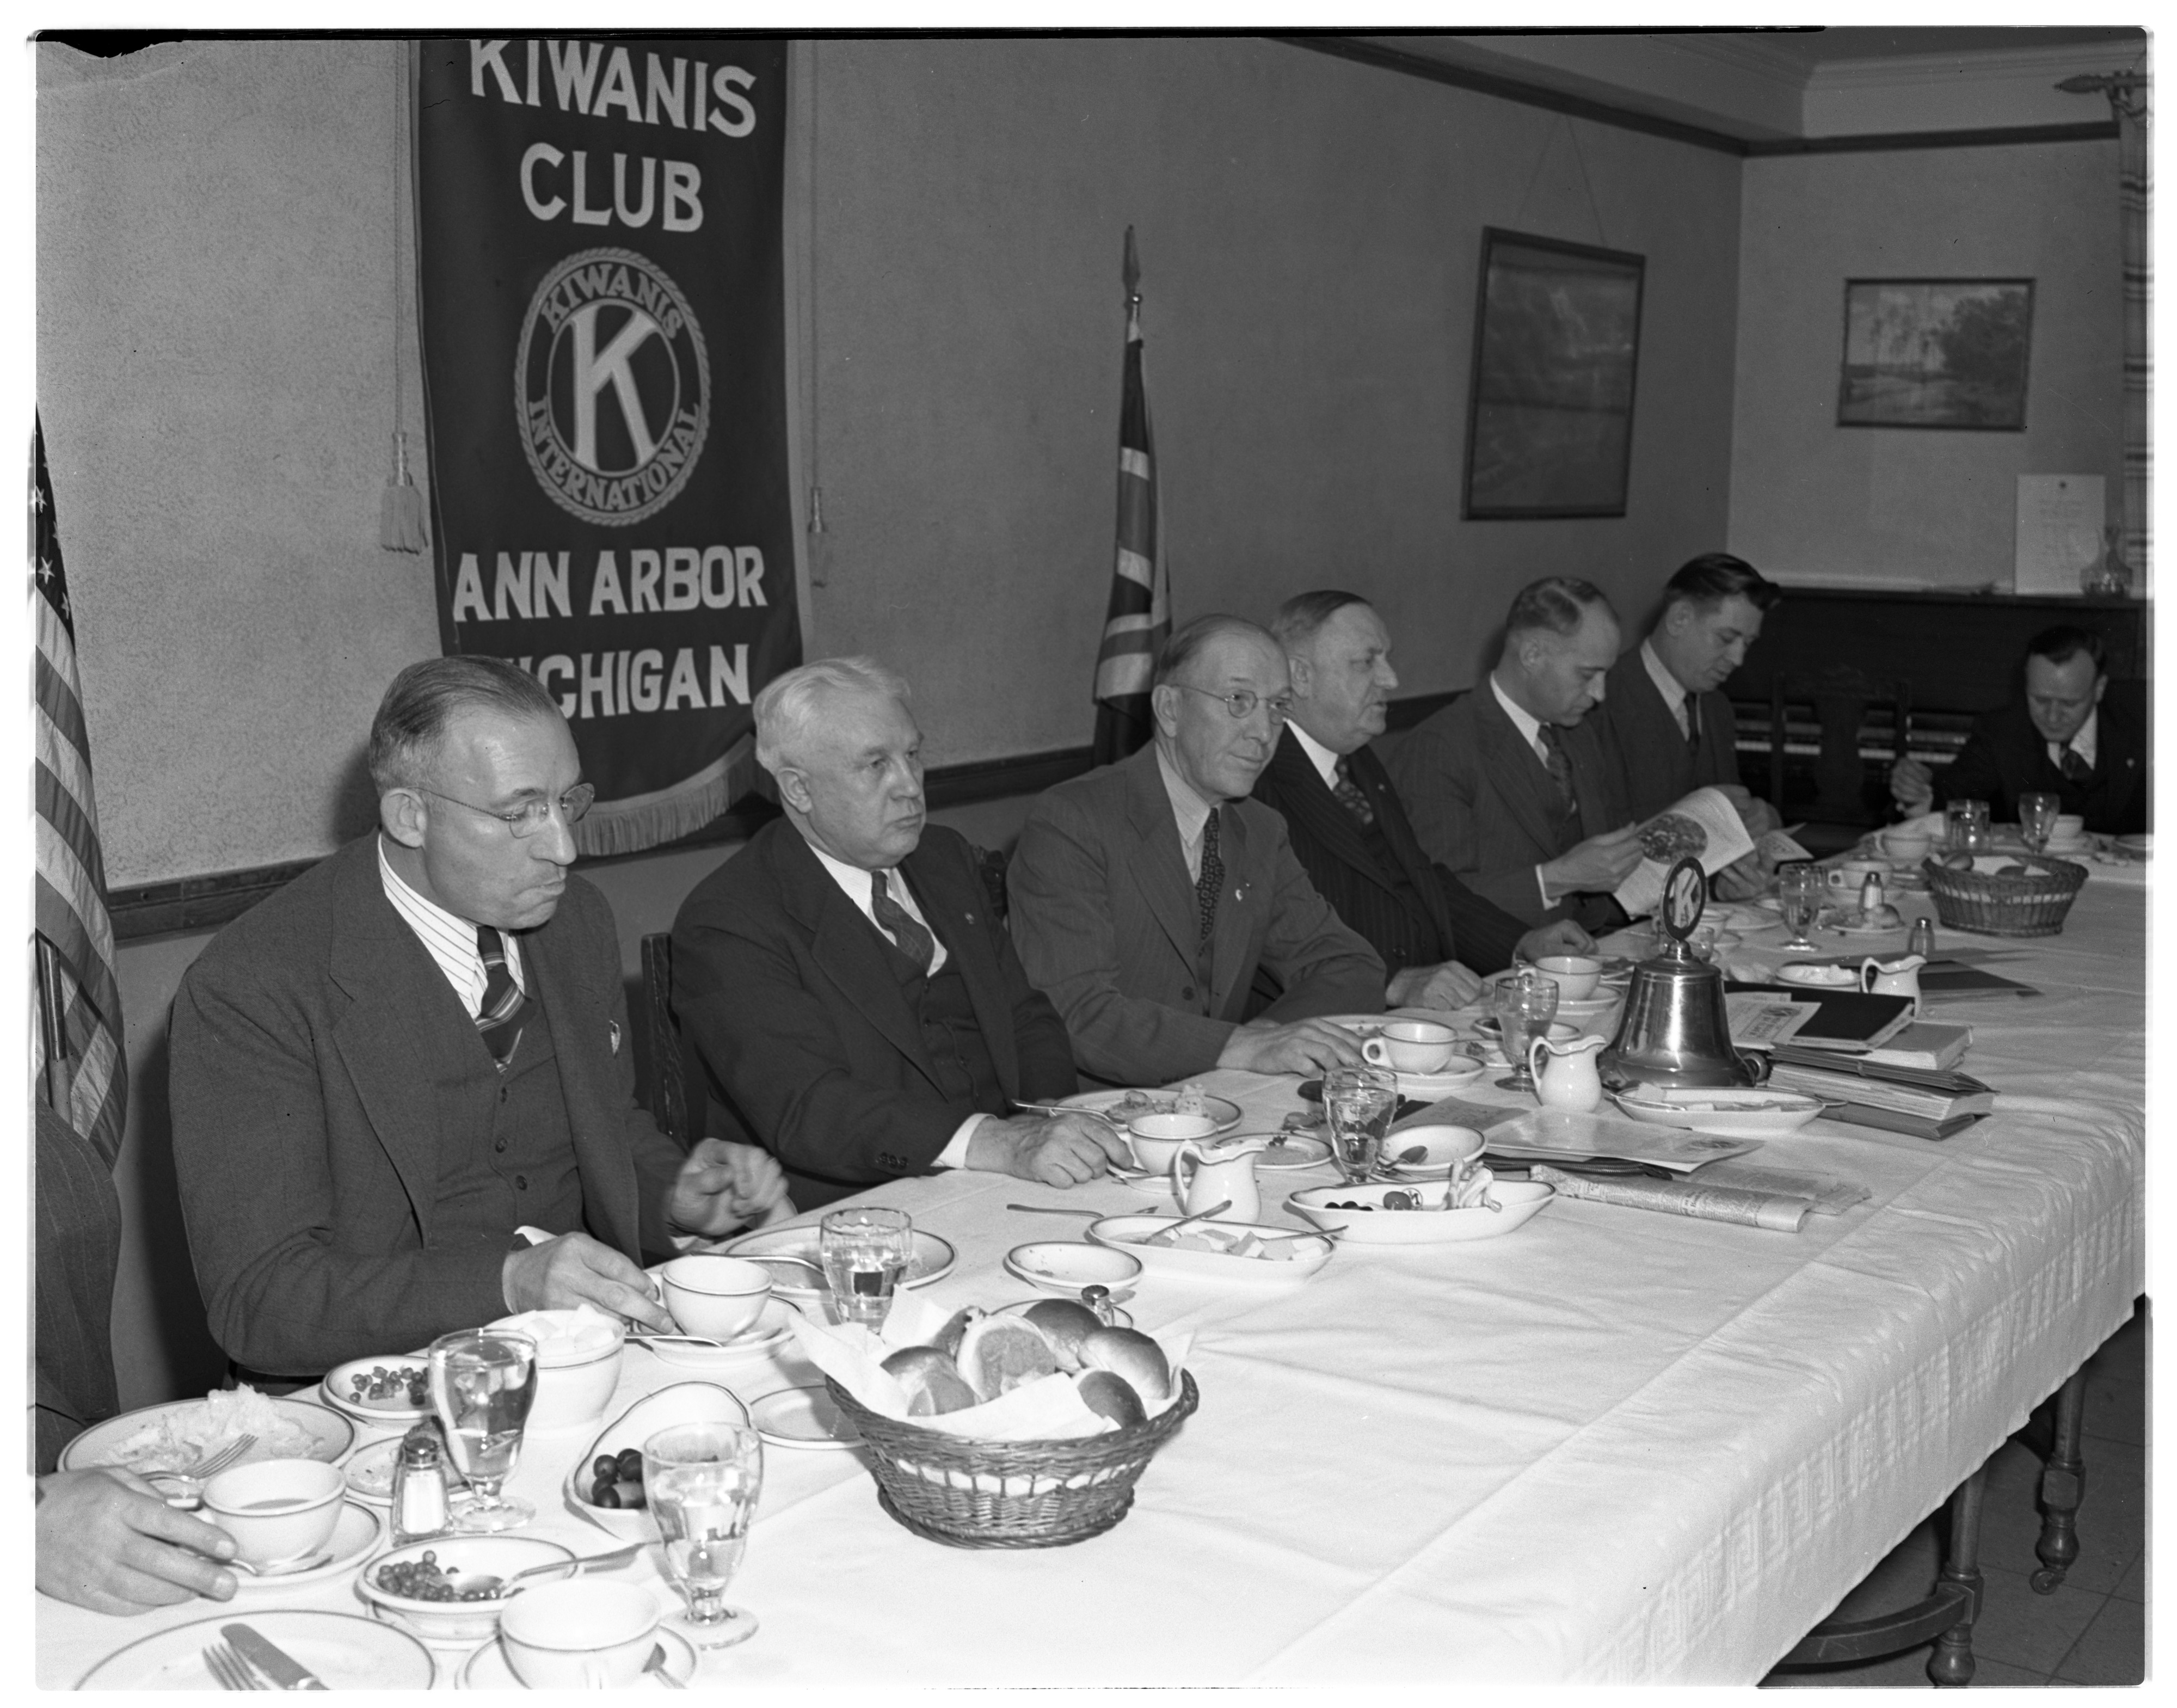 Training Meeting for Kiwanis' Officers, November 1940 image